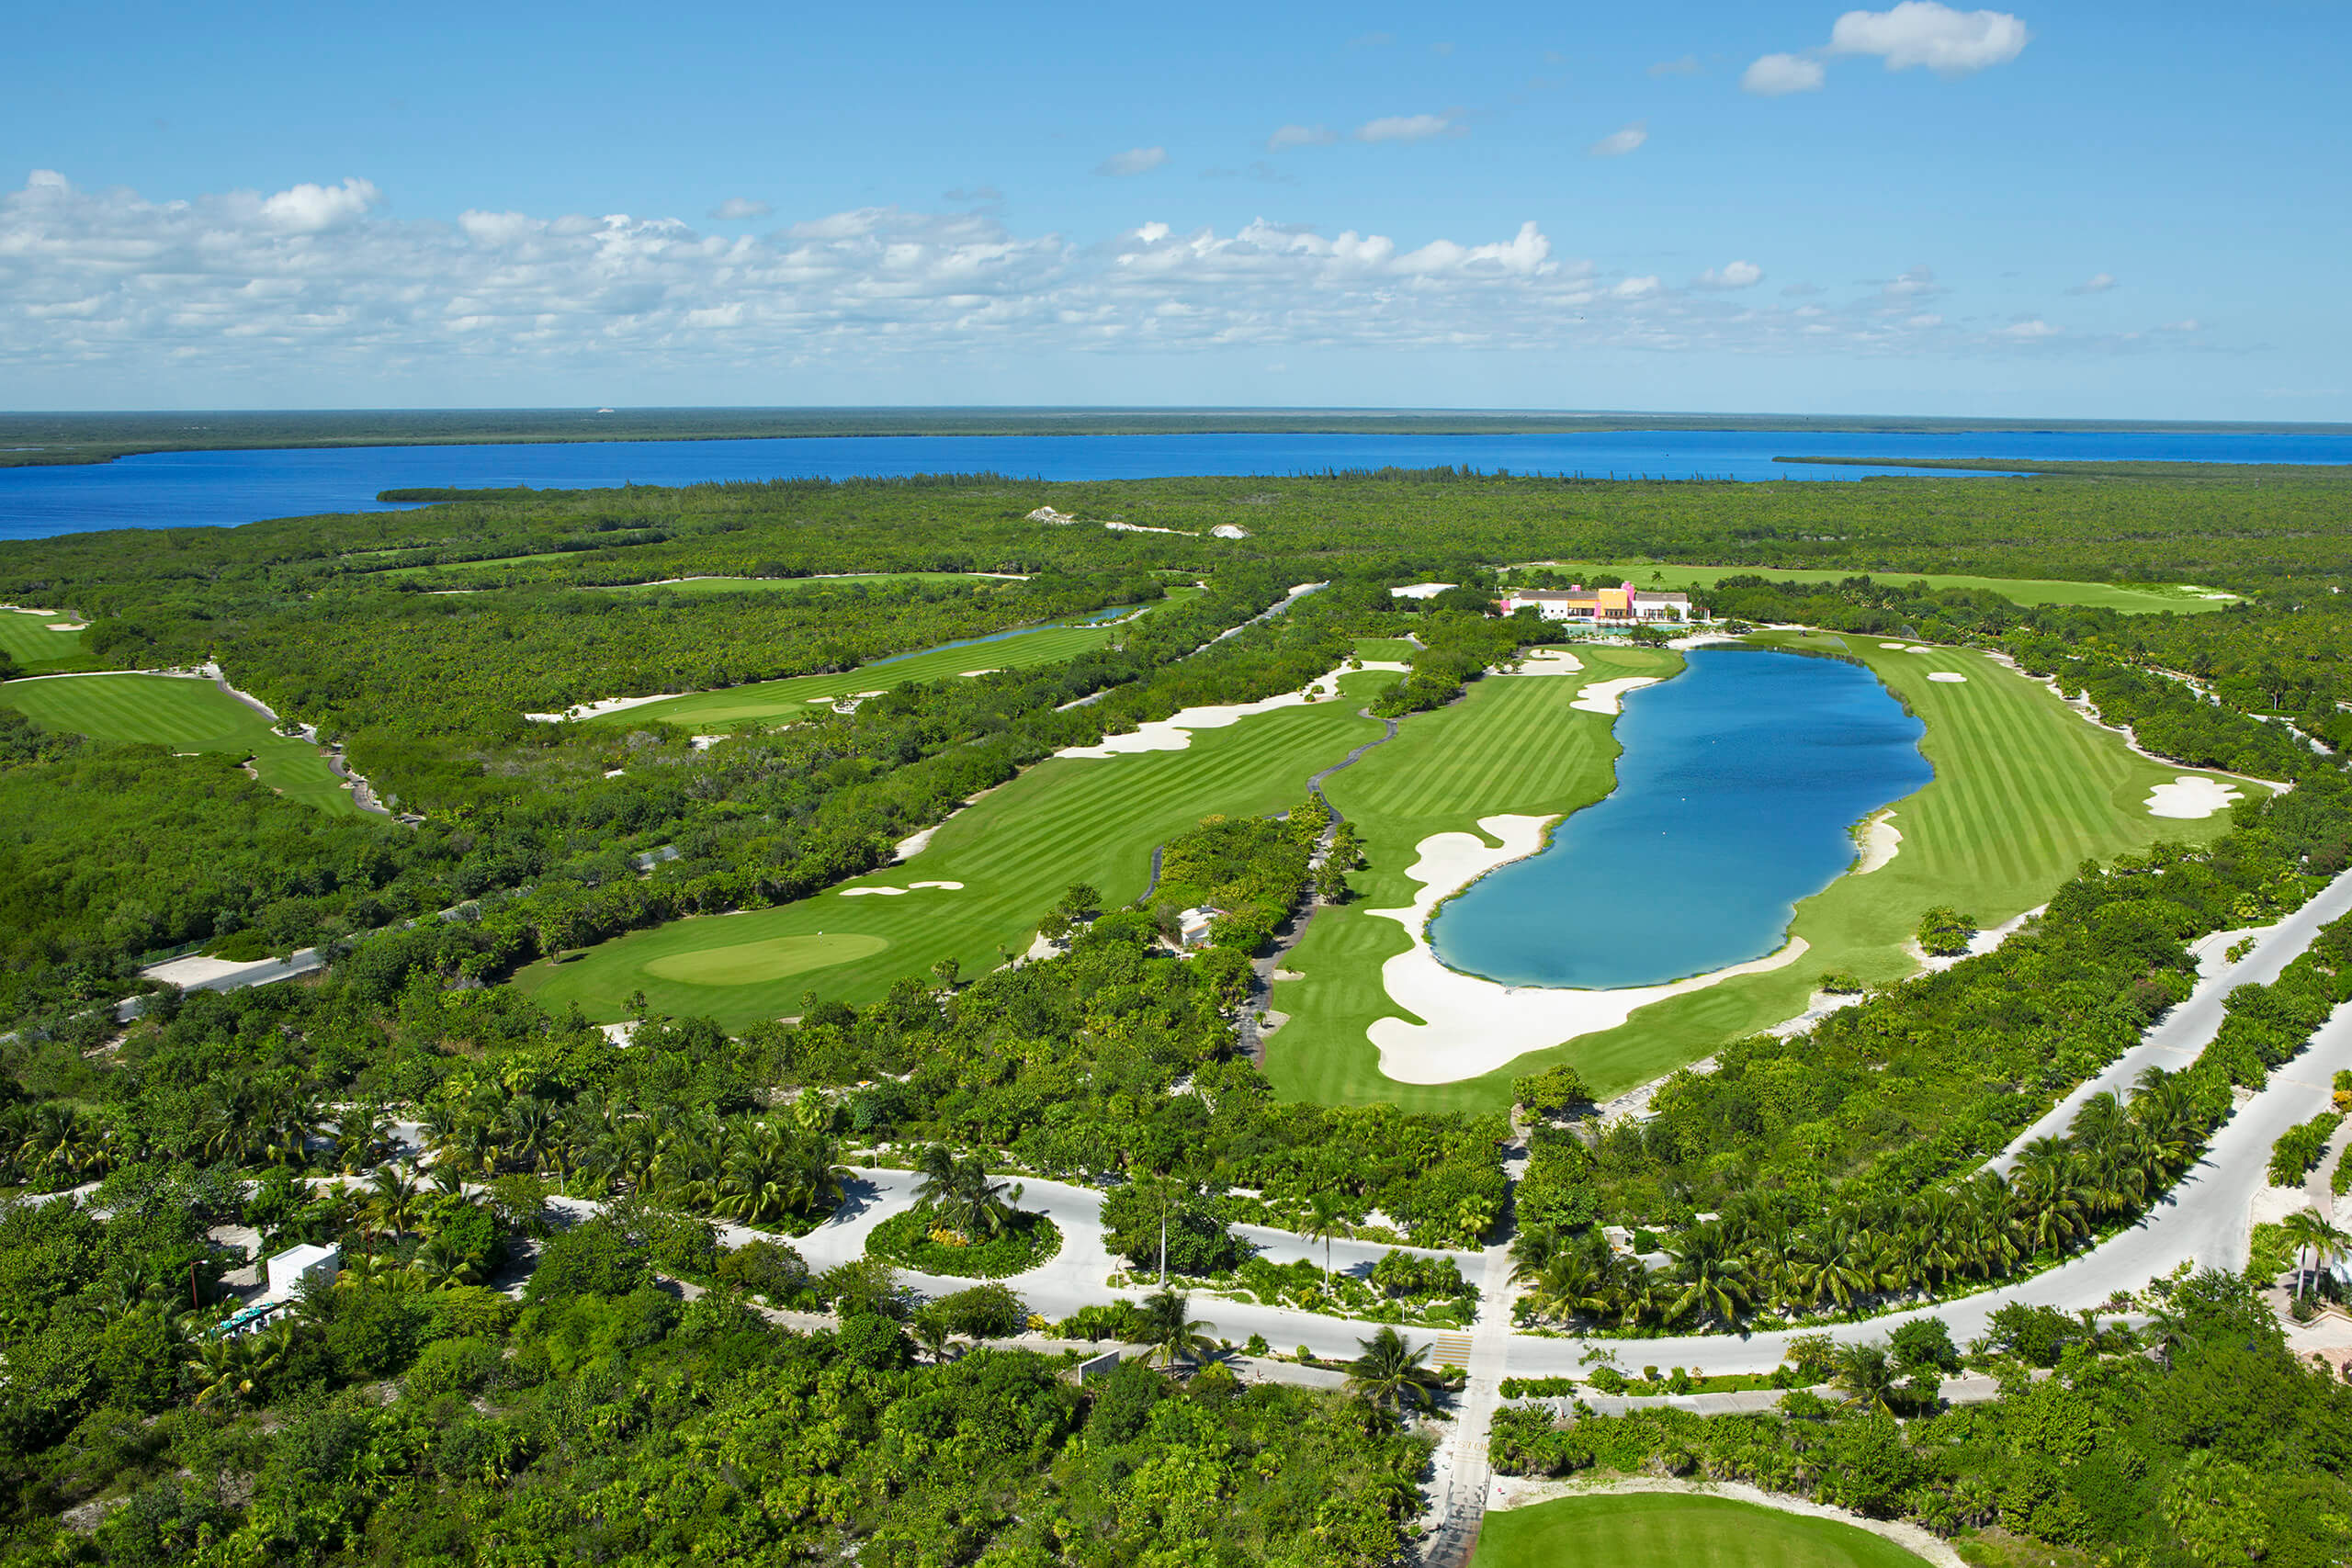 aerial view of the playa mujeres golf course